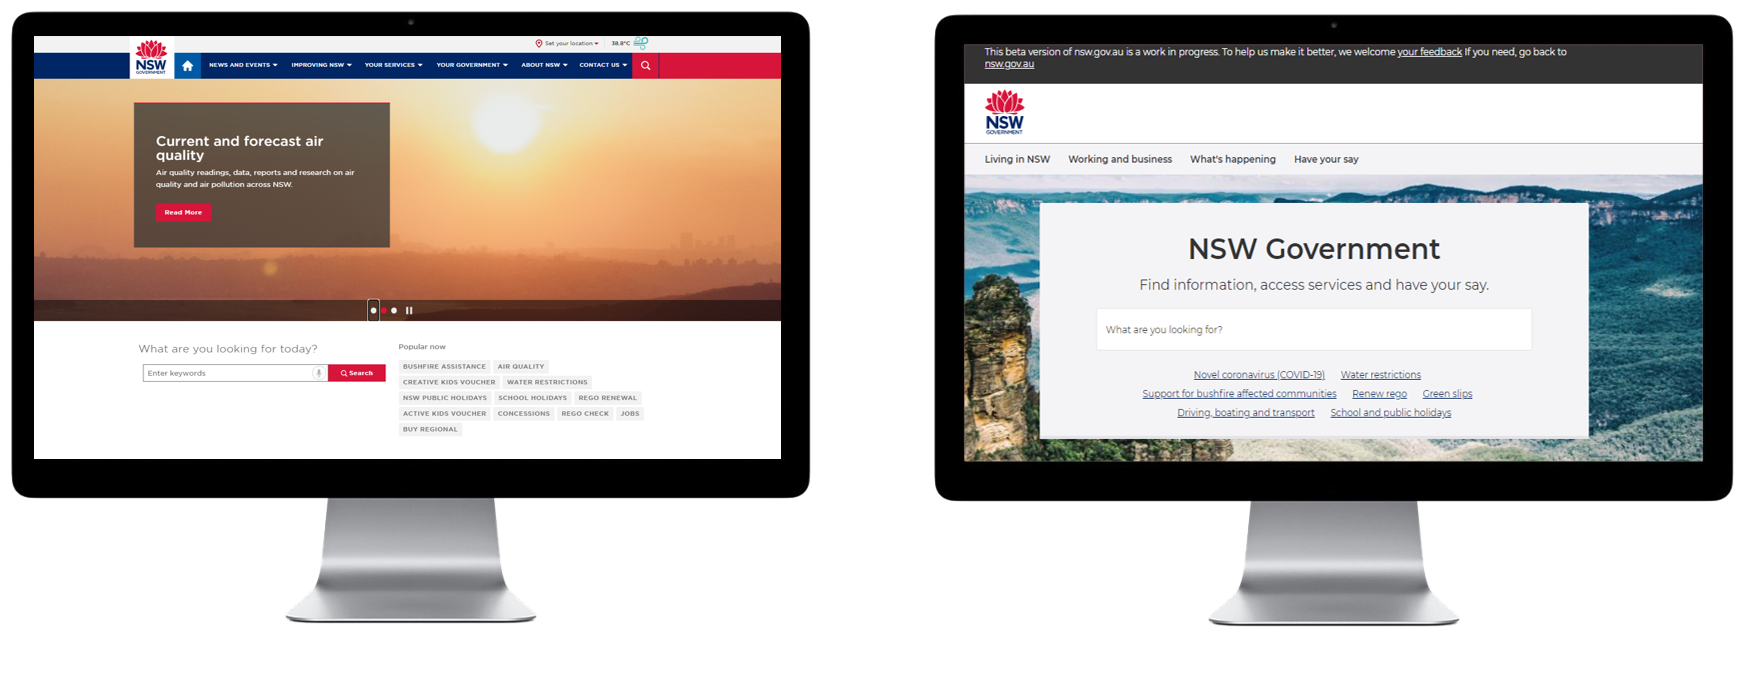 Two monitors side by side displaying the old and new nsw.gov.au website.